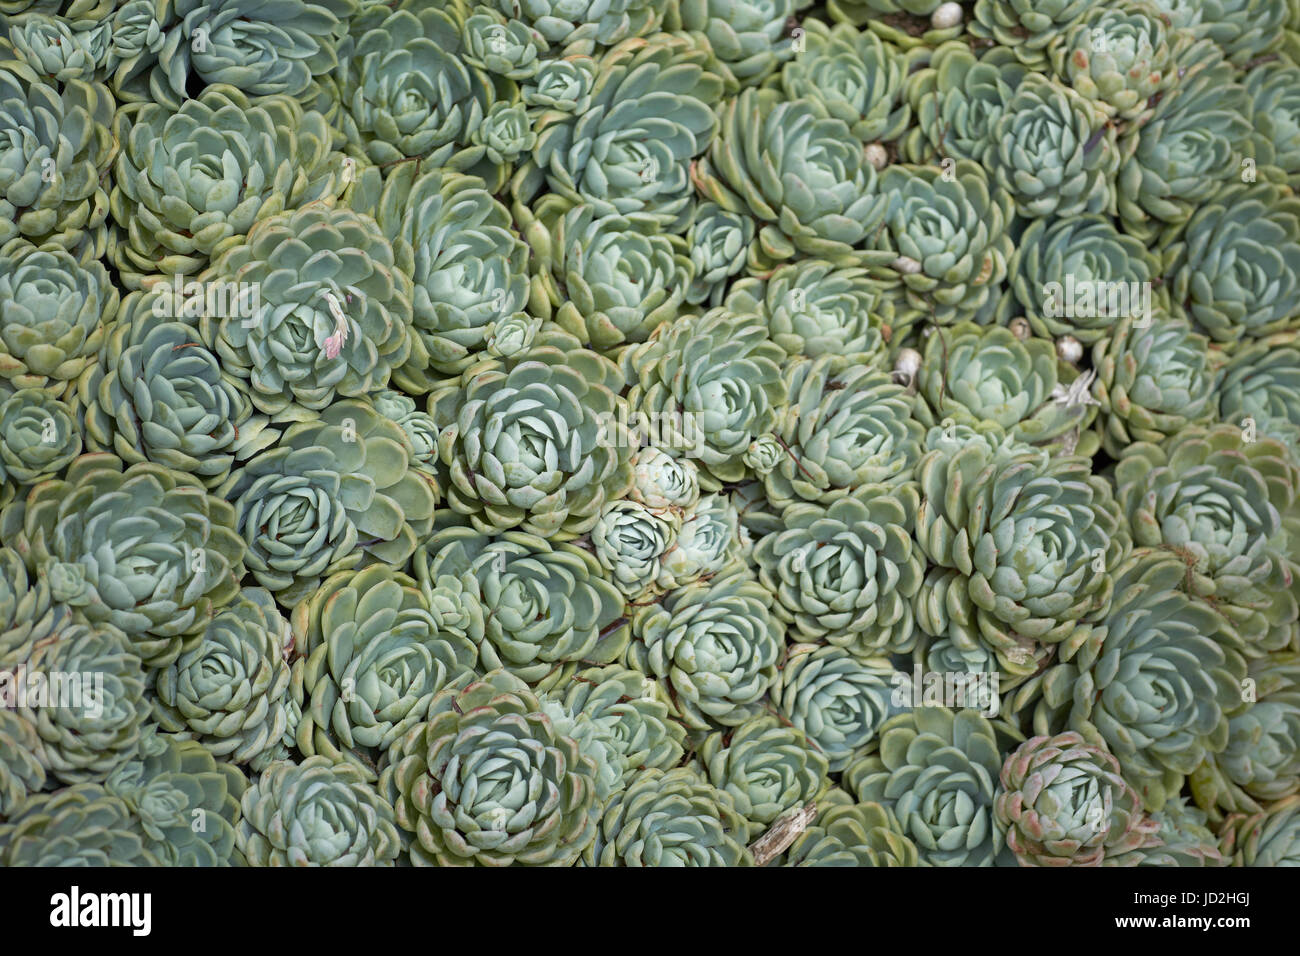 Succulent Ground Cover Stock Photos Succulent Ground Cover